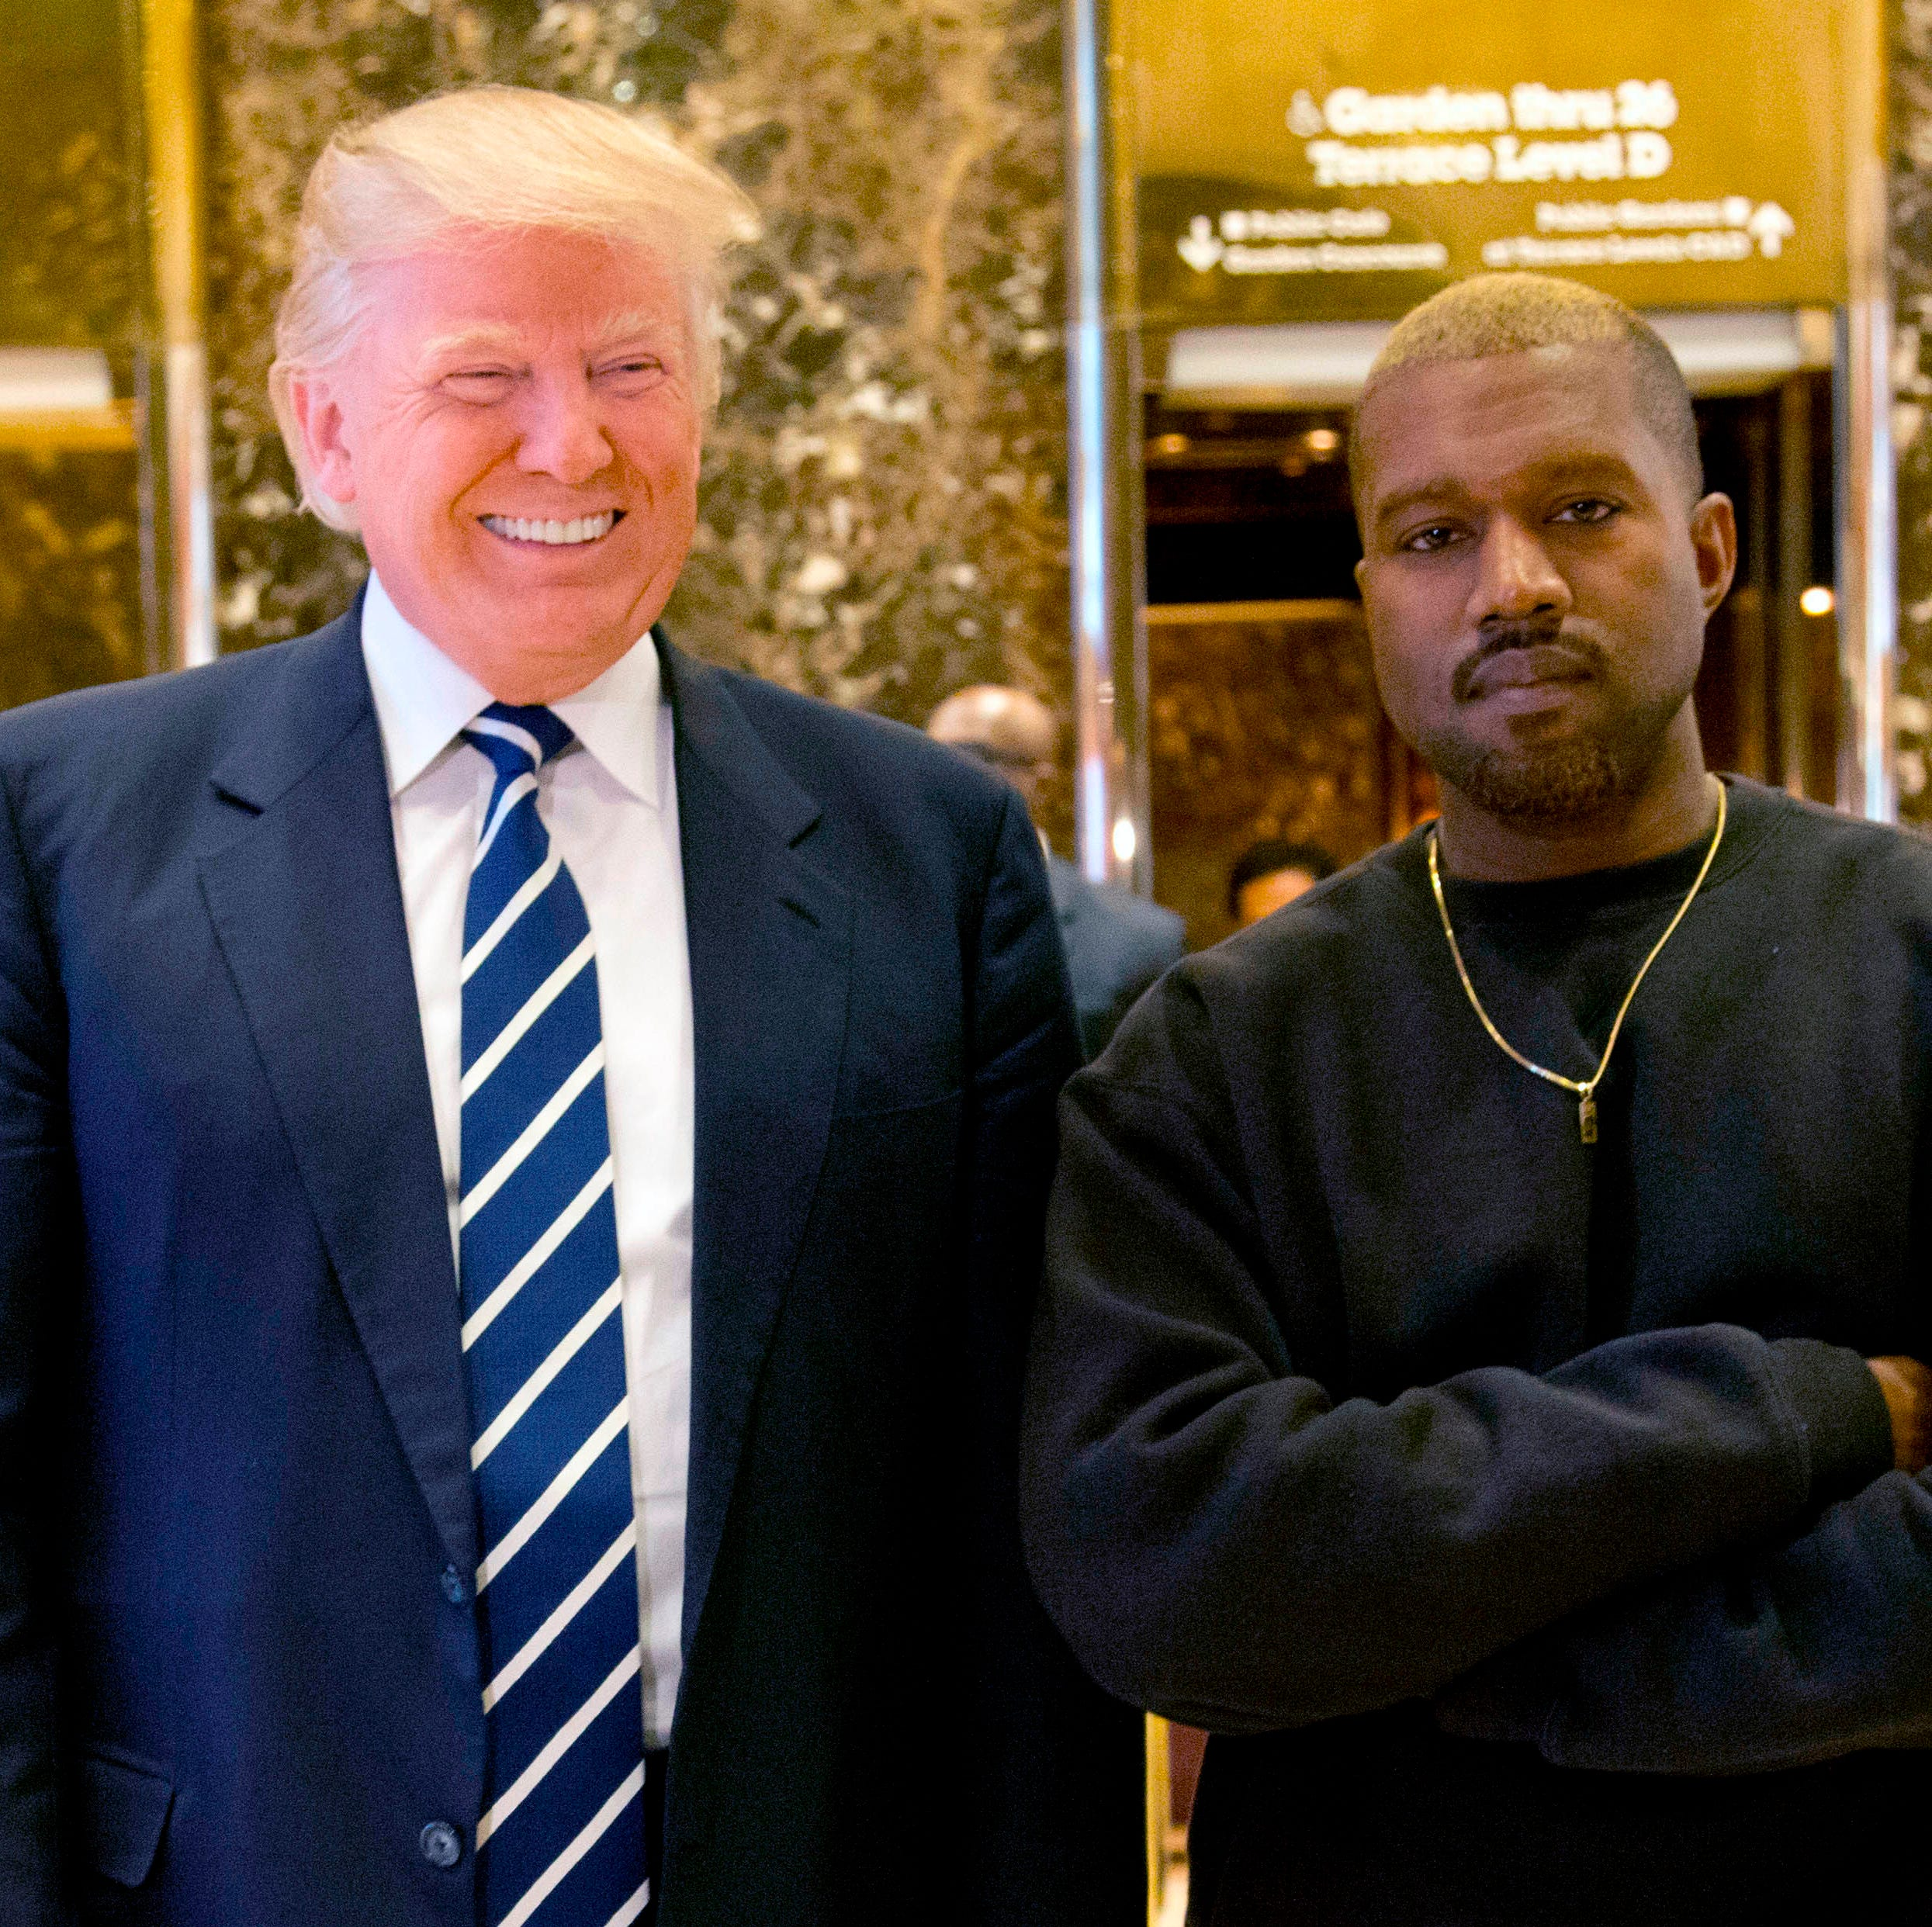 Then-president-elect Donald Trump and Kanye West at Trump Tower on Dec. 13, 2016.